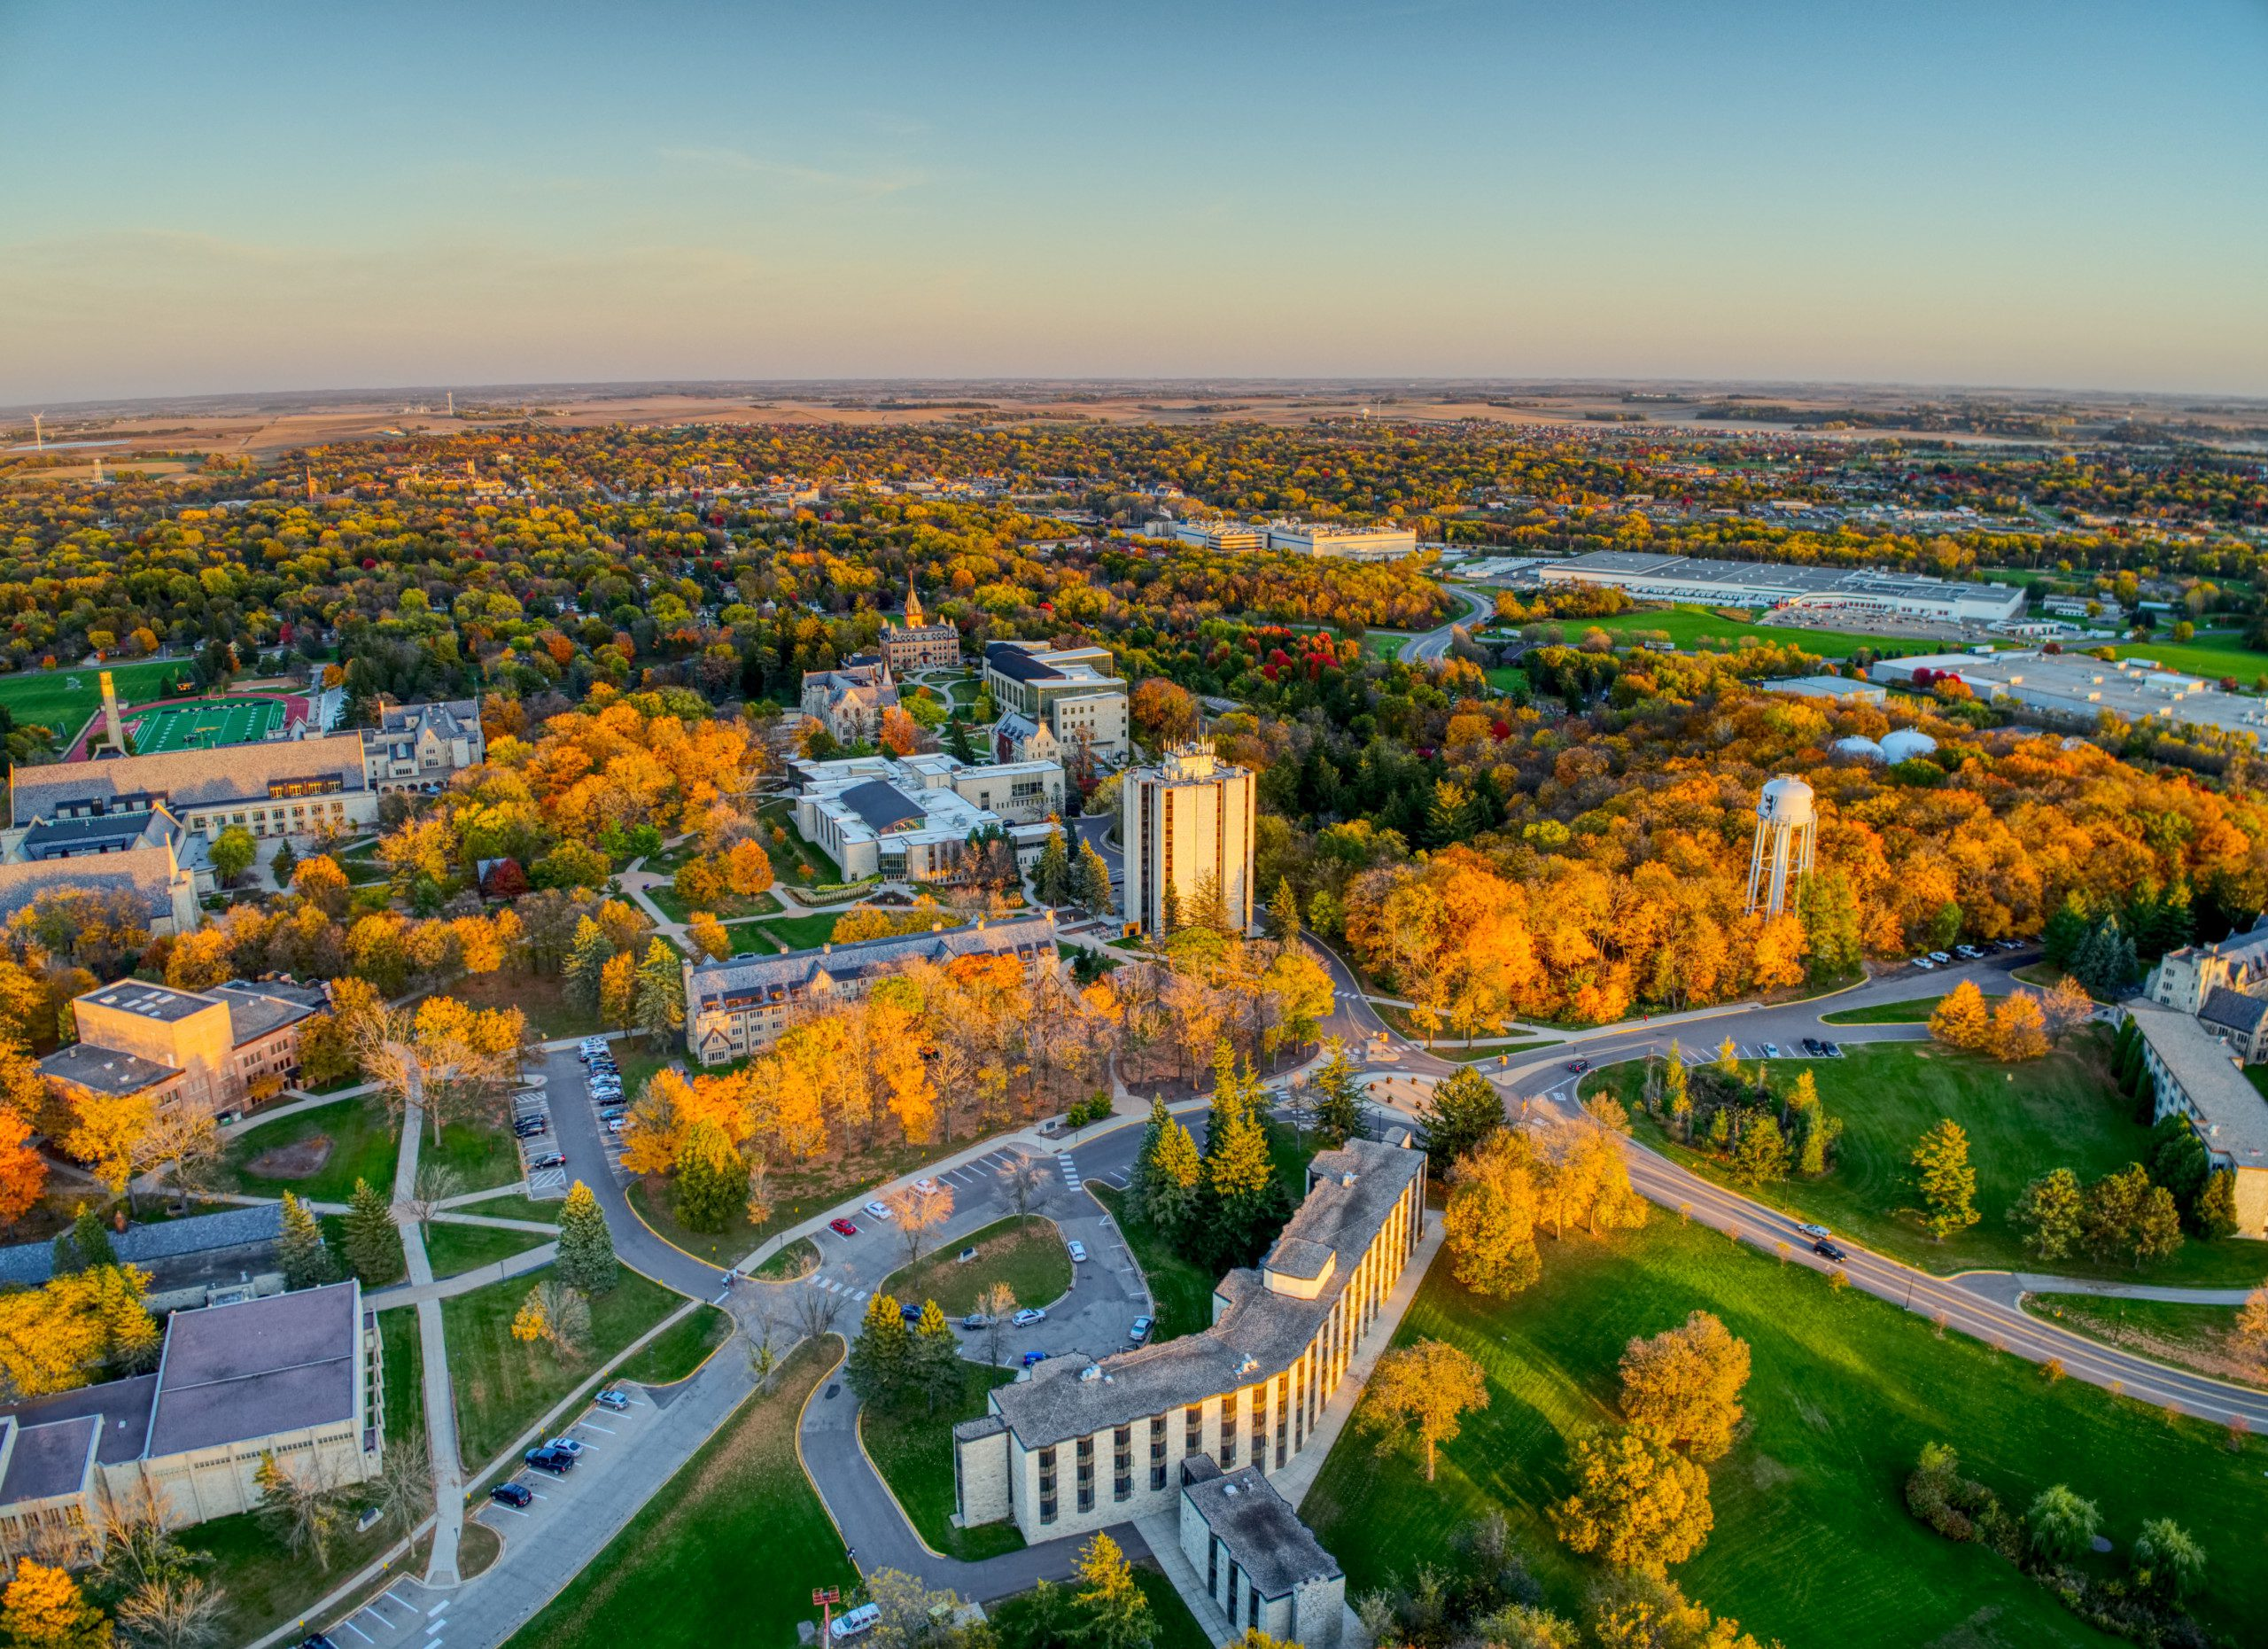 Aerial photo of the St. Olaf campus.